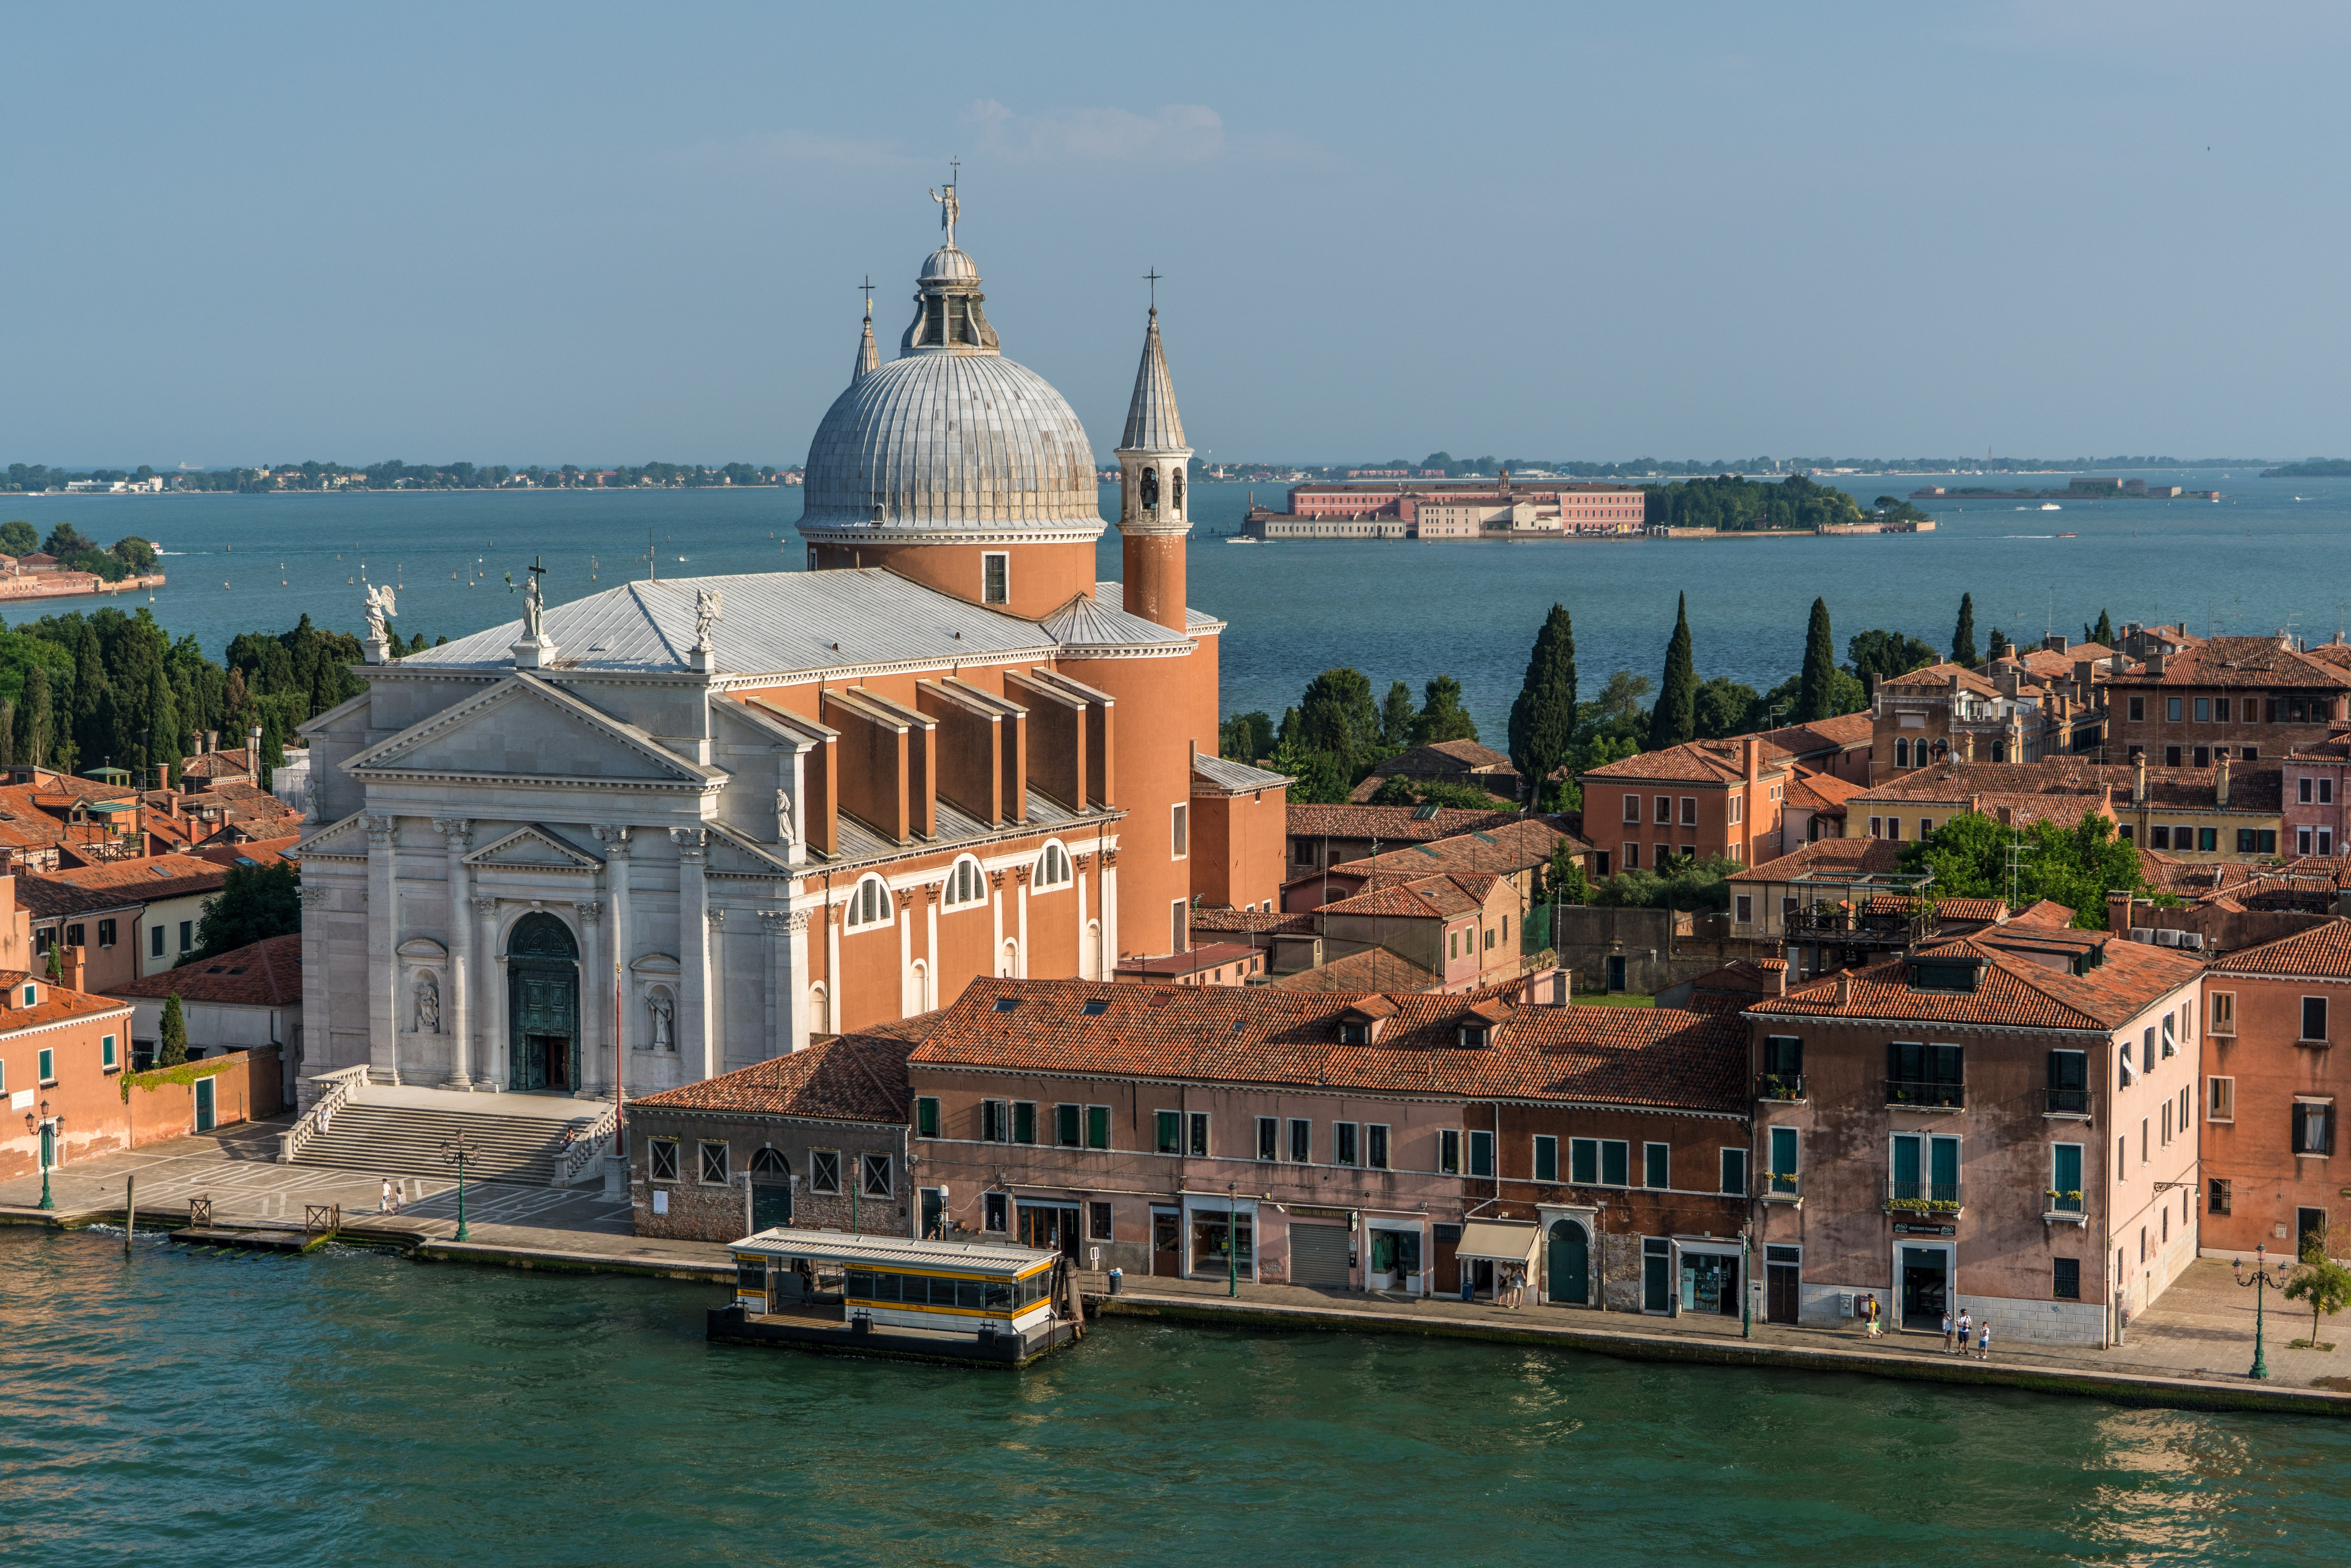 White and Beige Structure Building and Cathedral Near Body of Water during Daytime, Architecture, River, Water, Venice, HQ Photo